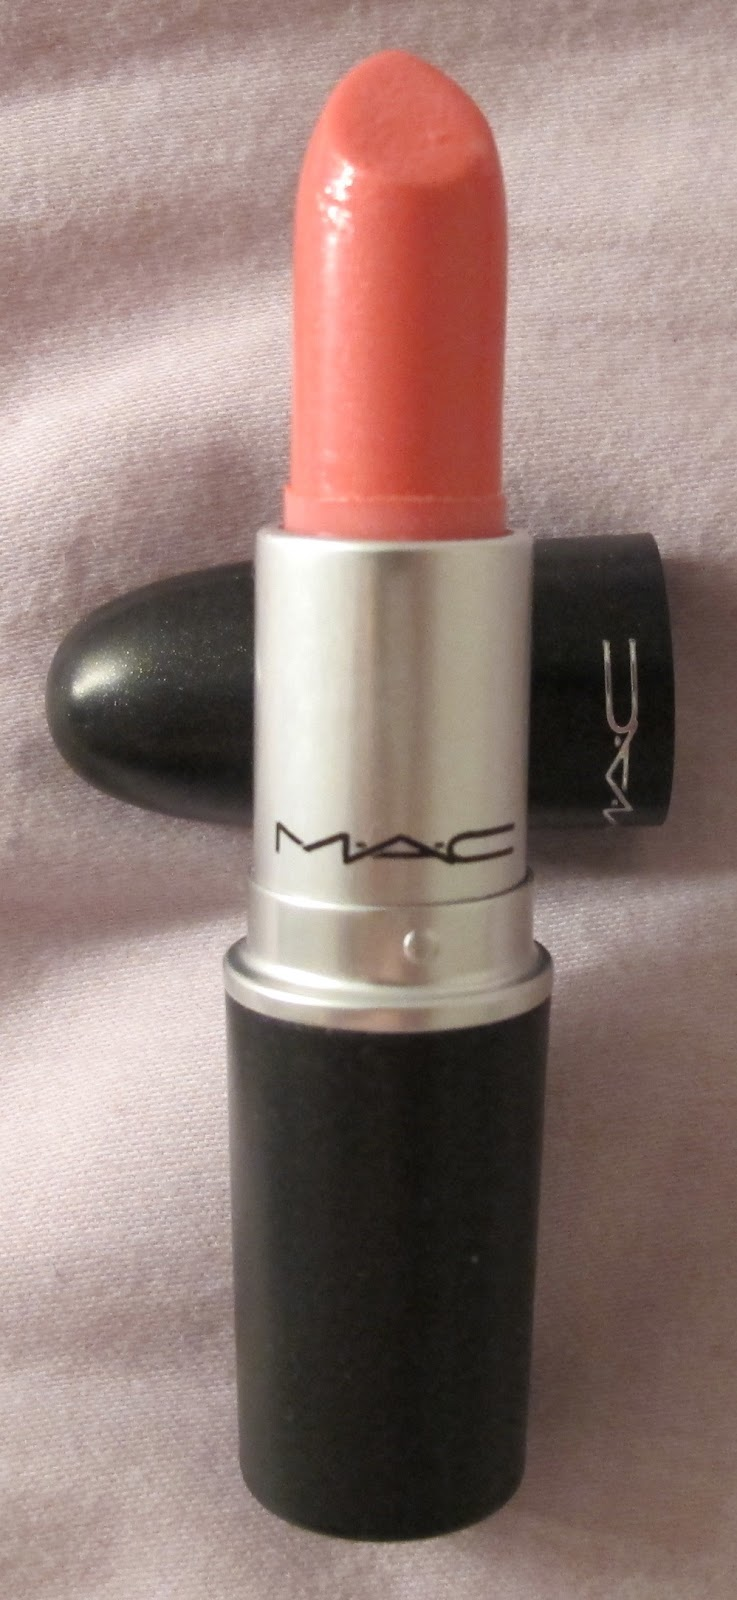 Mac Look In A Box 2016 Summer Collection: Steph Stud Makeup: Neutral Brown Look Using MAC